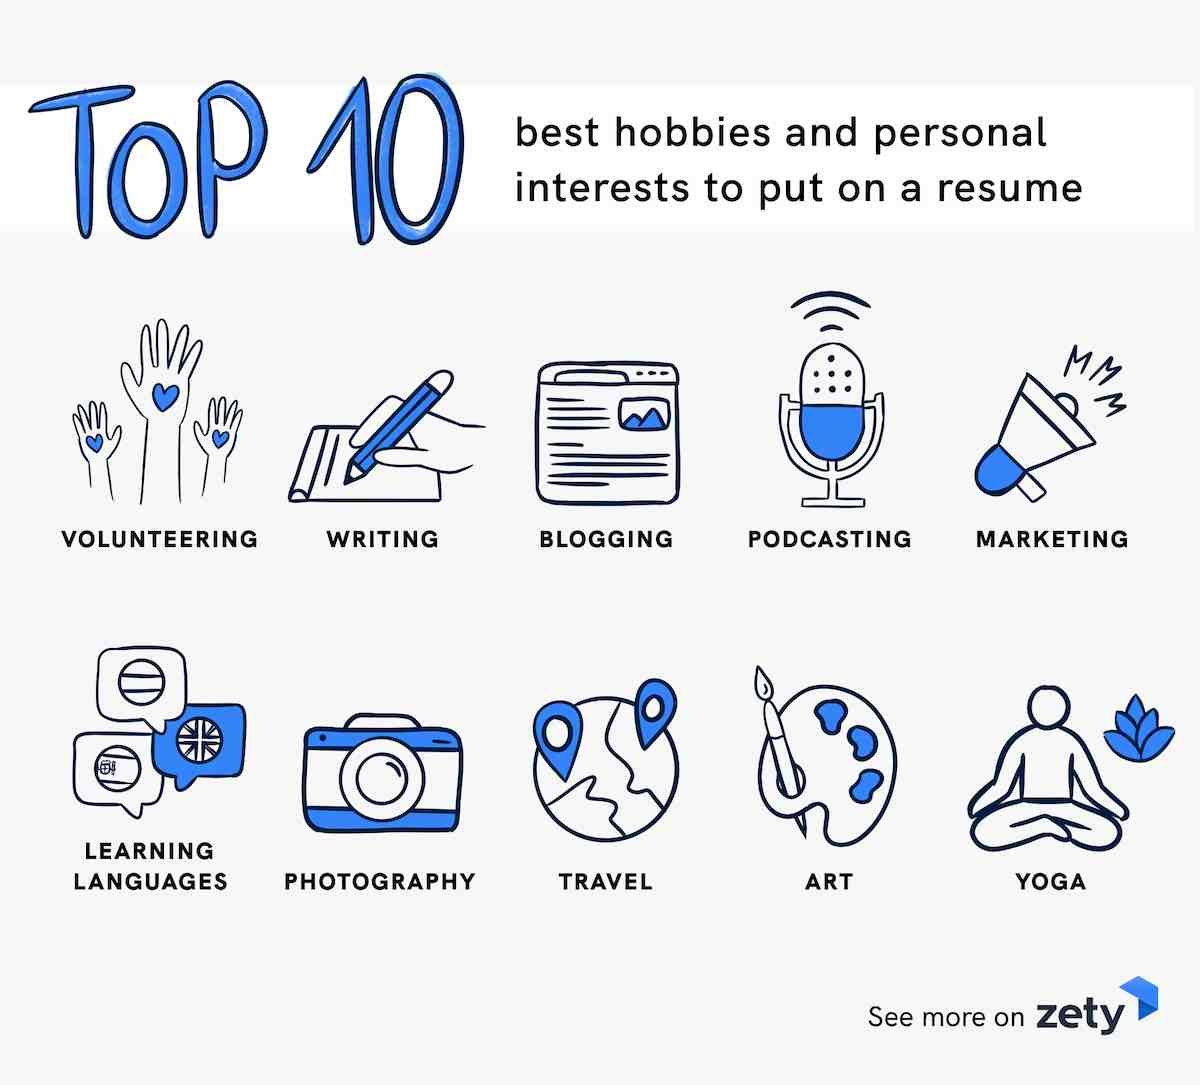 of hobbies and interests for resume cv examples activities top best personal to put on Resume Activities And Interests Resume